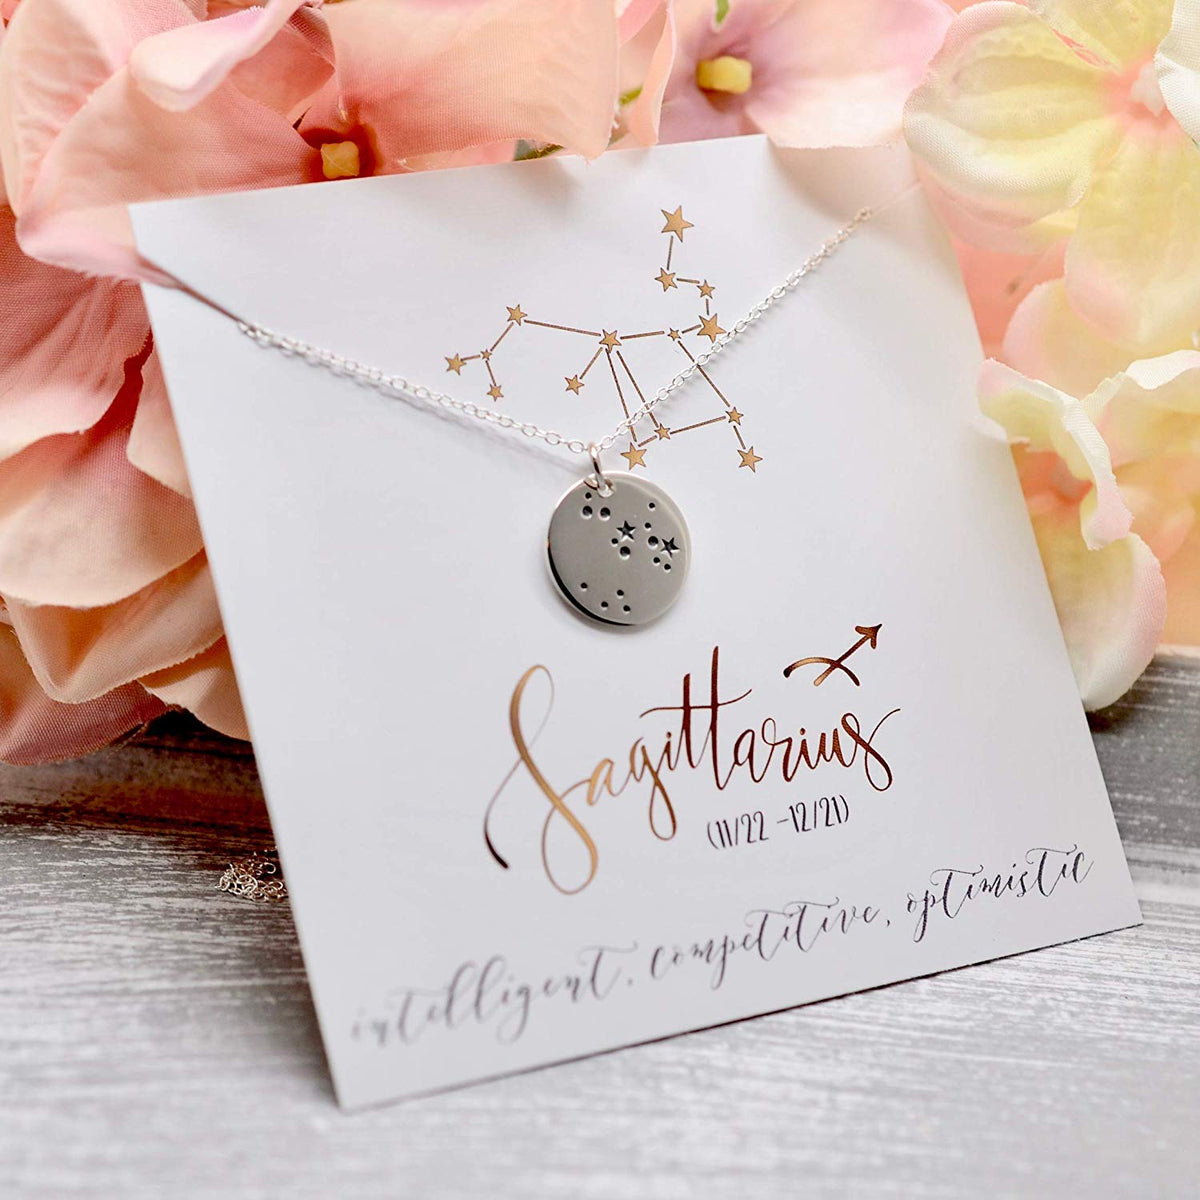 Sagittarius Zodiac Sign Sterling Silver Constellation Necklace - Love It Personalized